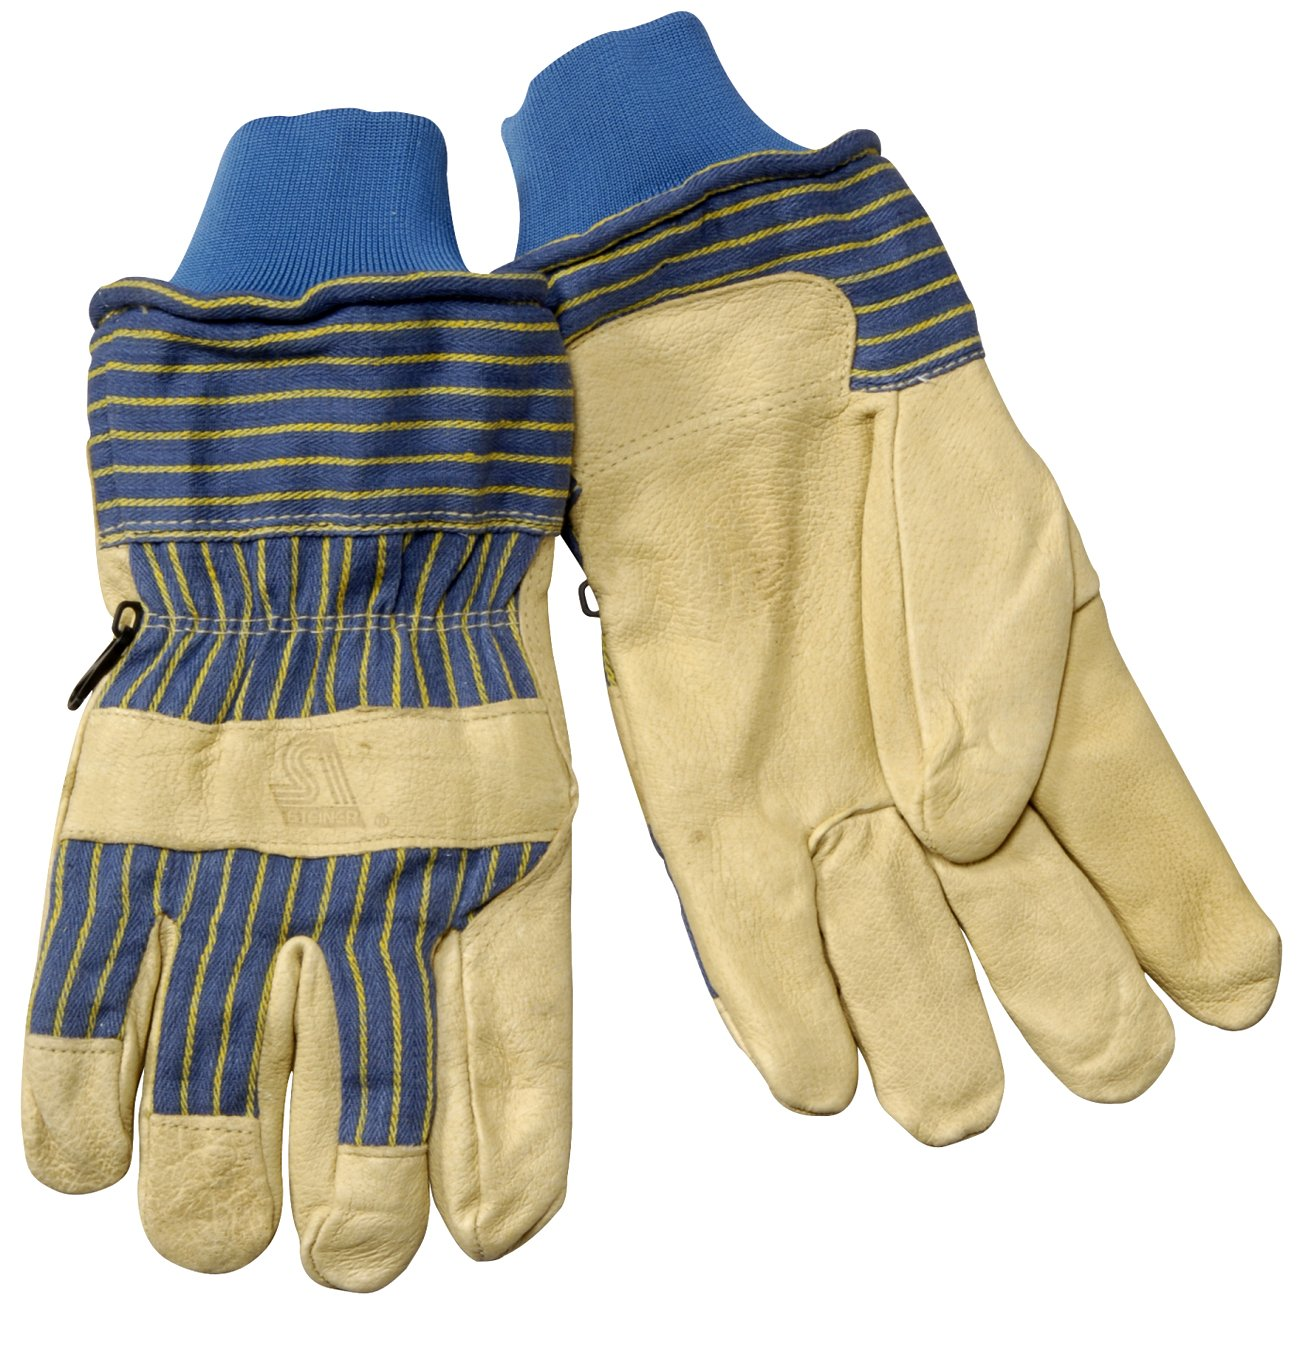 Insulated Thermal Work Gloves, Fully Lined, With Pigskin Outer Shell, Fabric Back, Knit Cuff